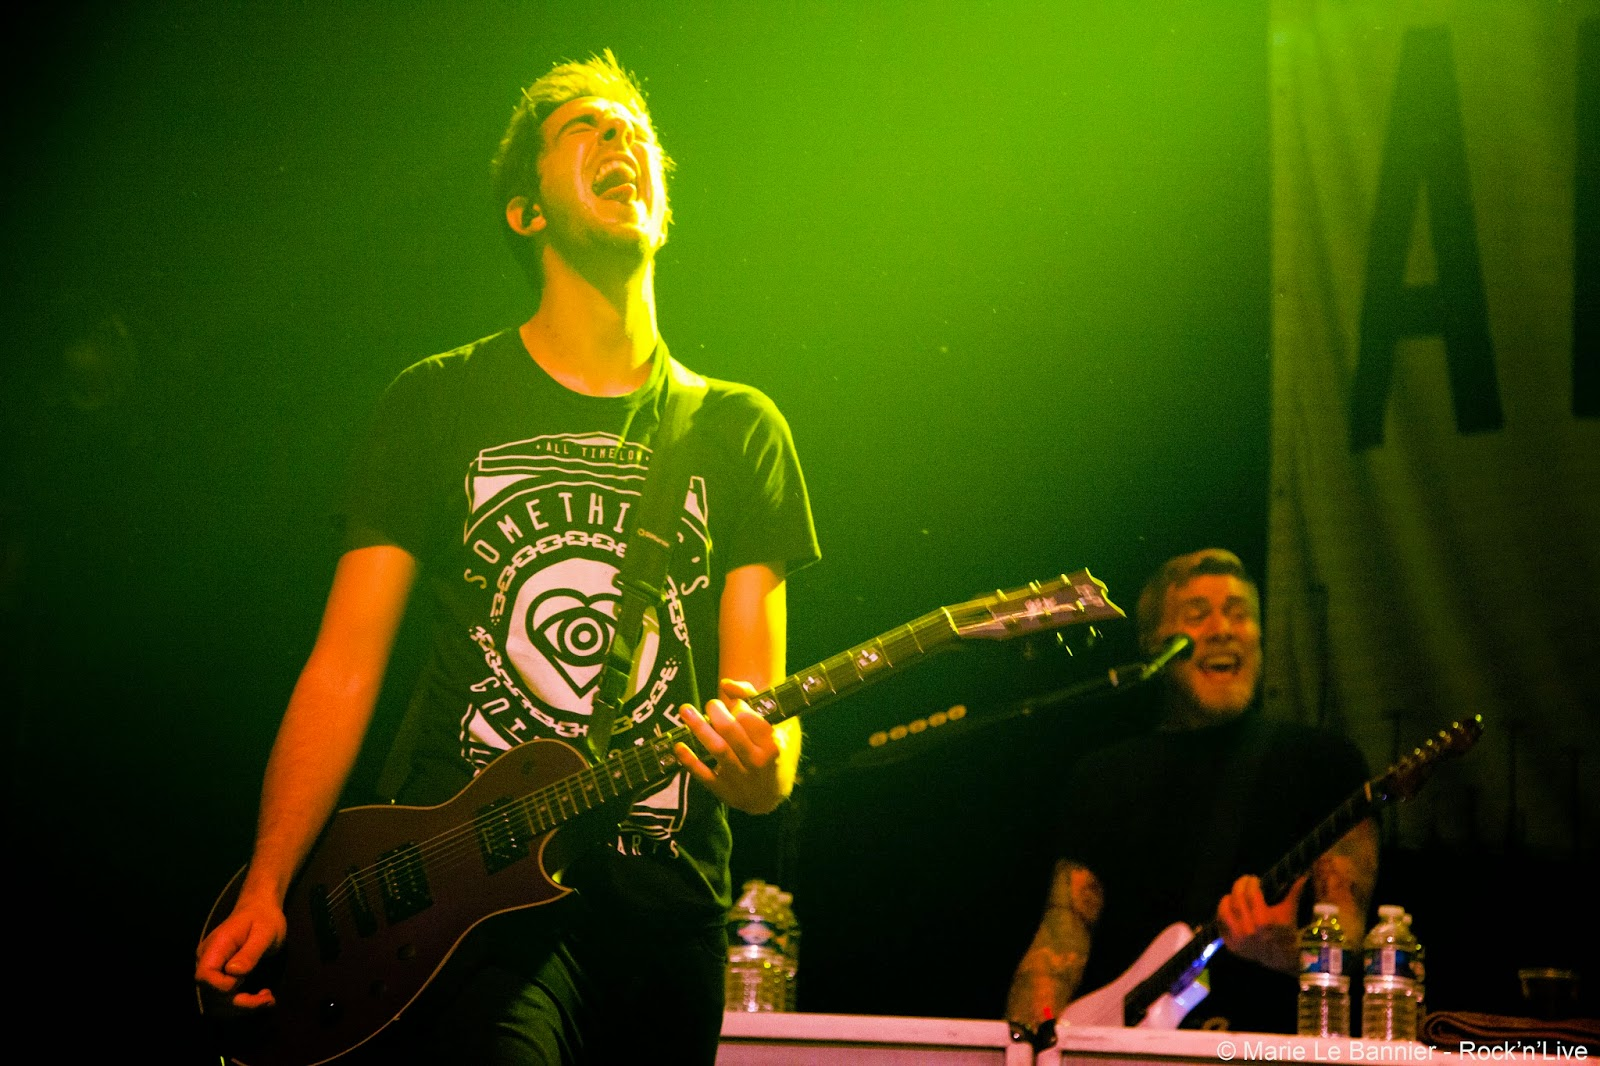 All Time Low Alex Gaskarth Jack Barakat Future Hearts Bataclan Paris Rock Pop Punk Rock'n'Live Marie Le Bannier Concert Live Report